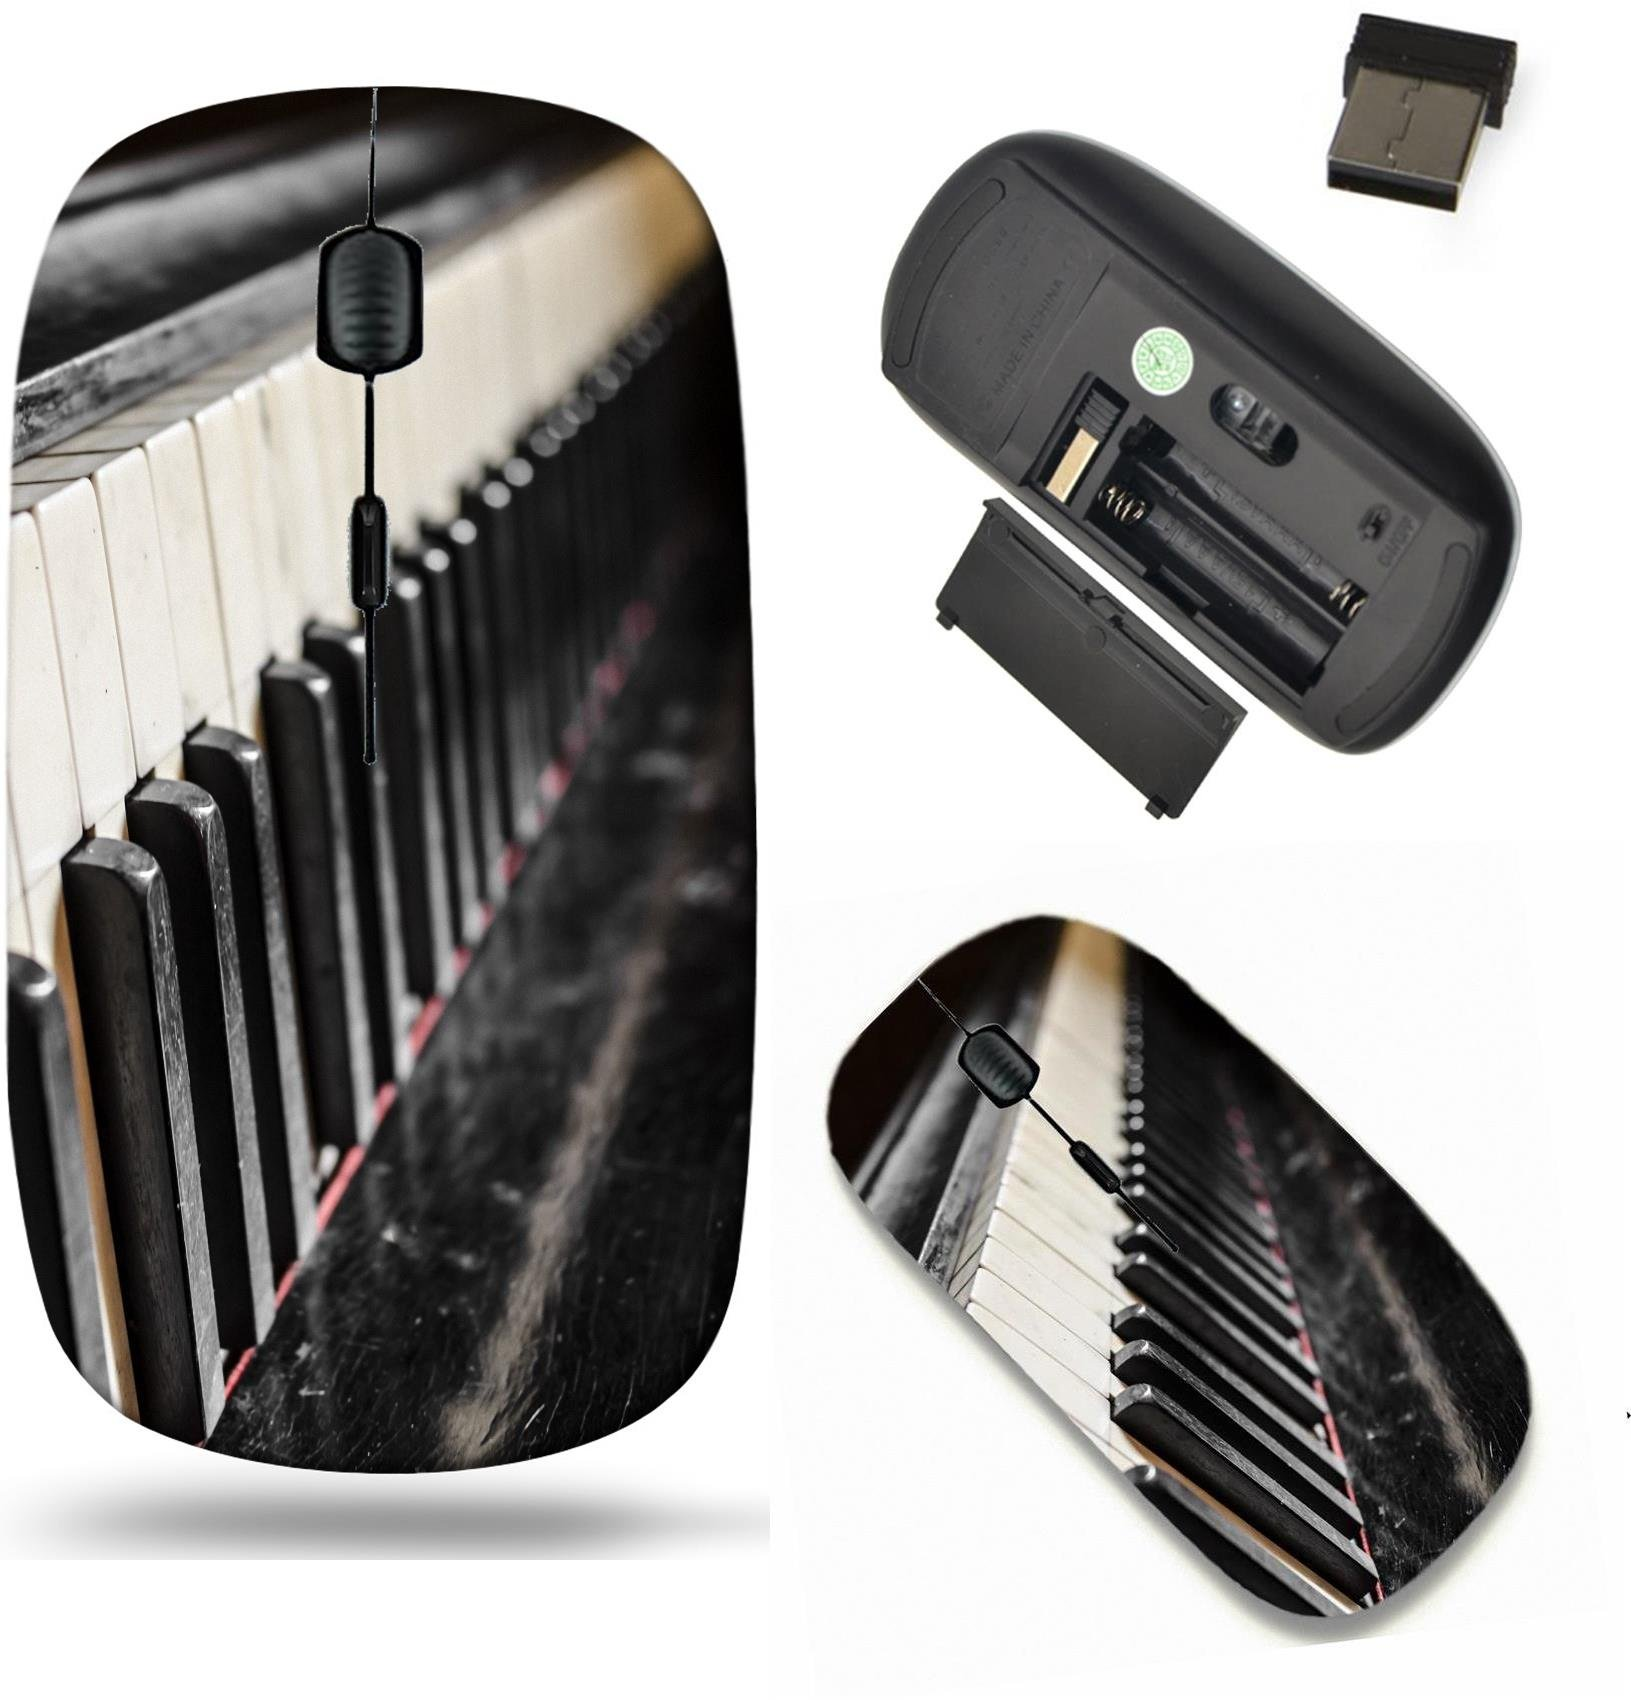 Liili Wireless Mouse Travel 2.4G Wireless Mice with USB Receiver, Click with 1000 DPI for notebook, pc, laptop, computer, mac book Detail of old and dirty piano keyboard 29378342